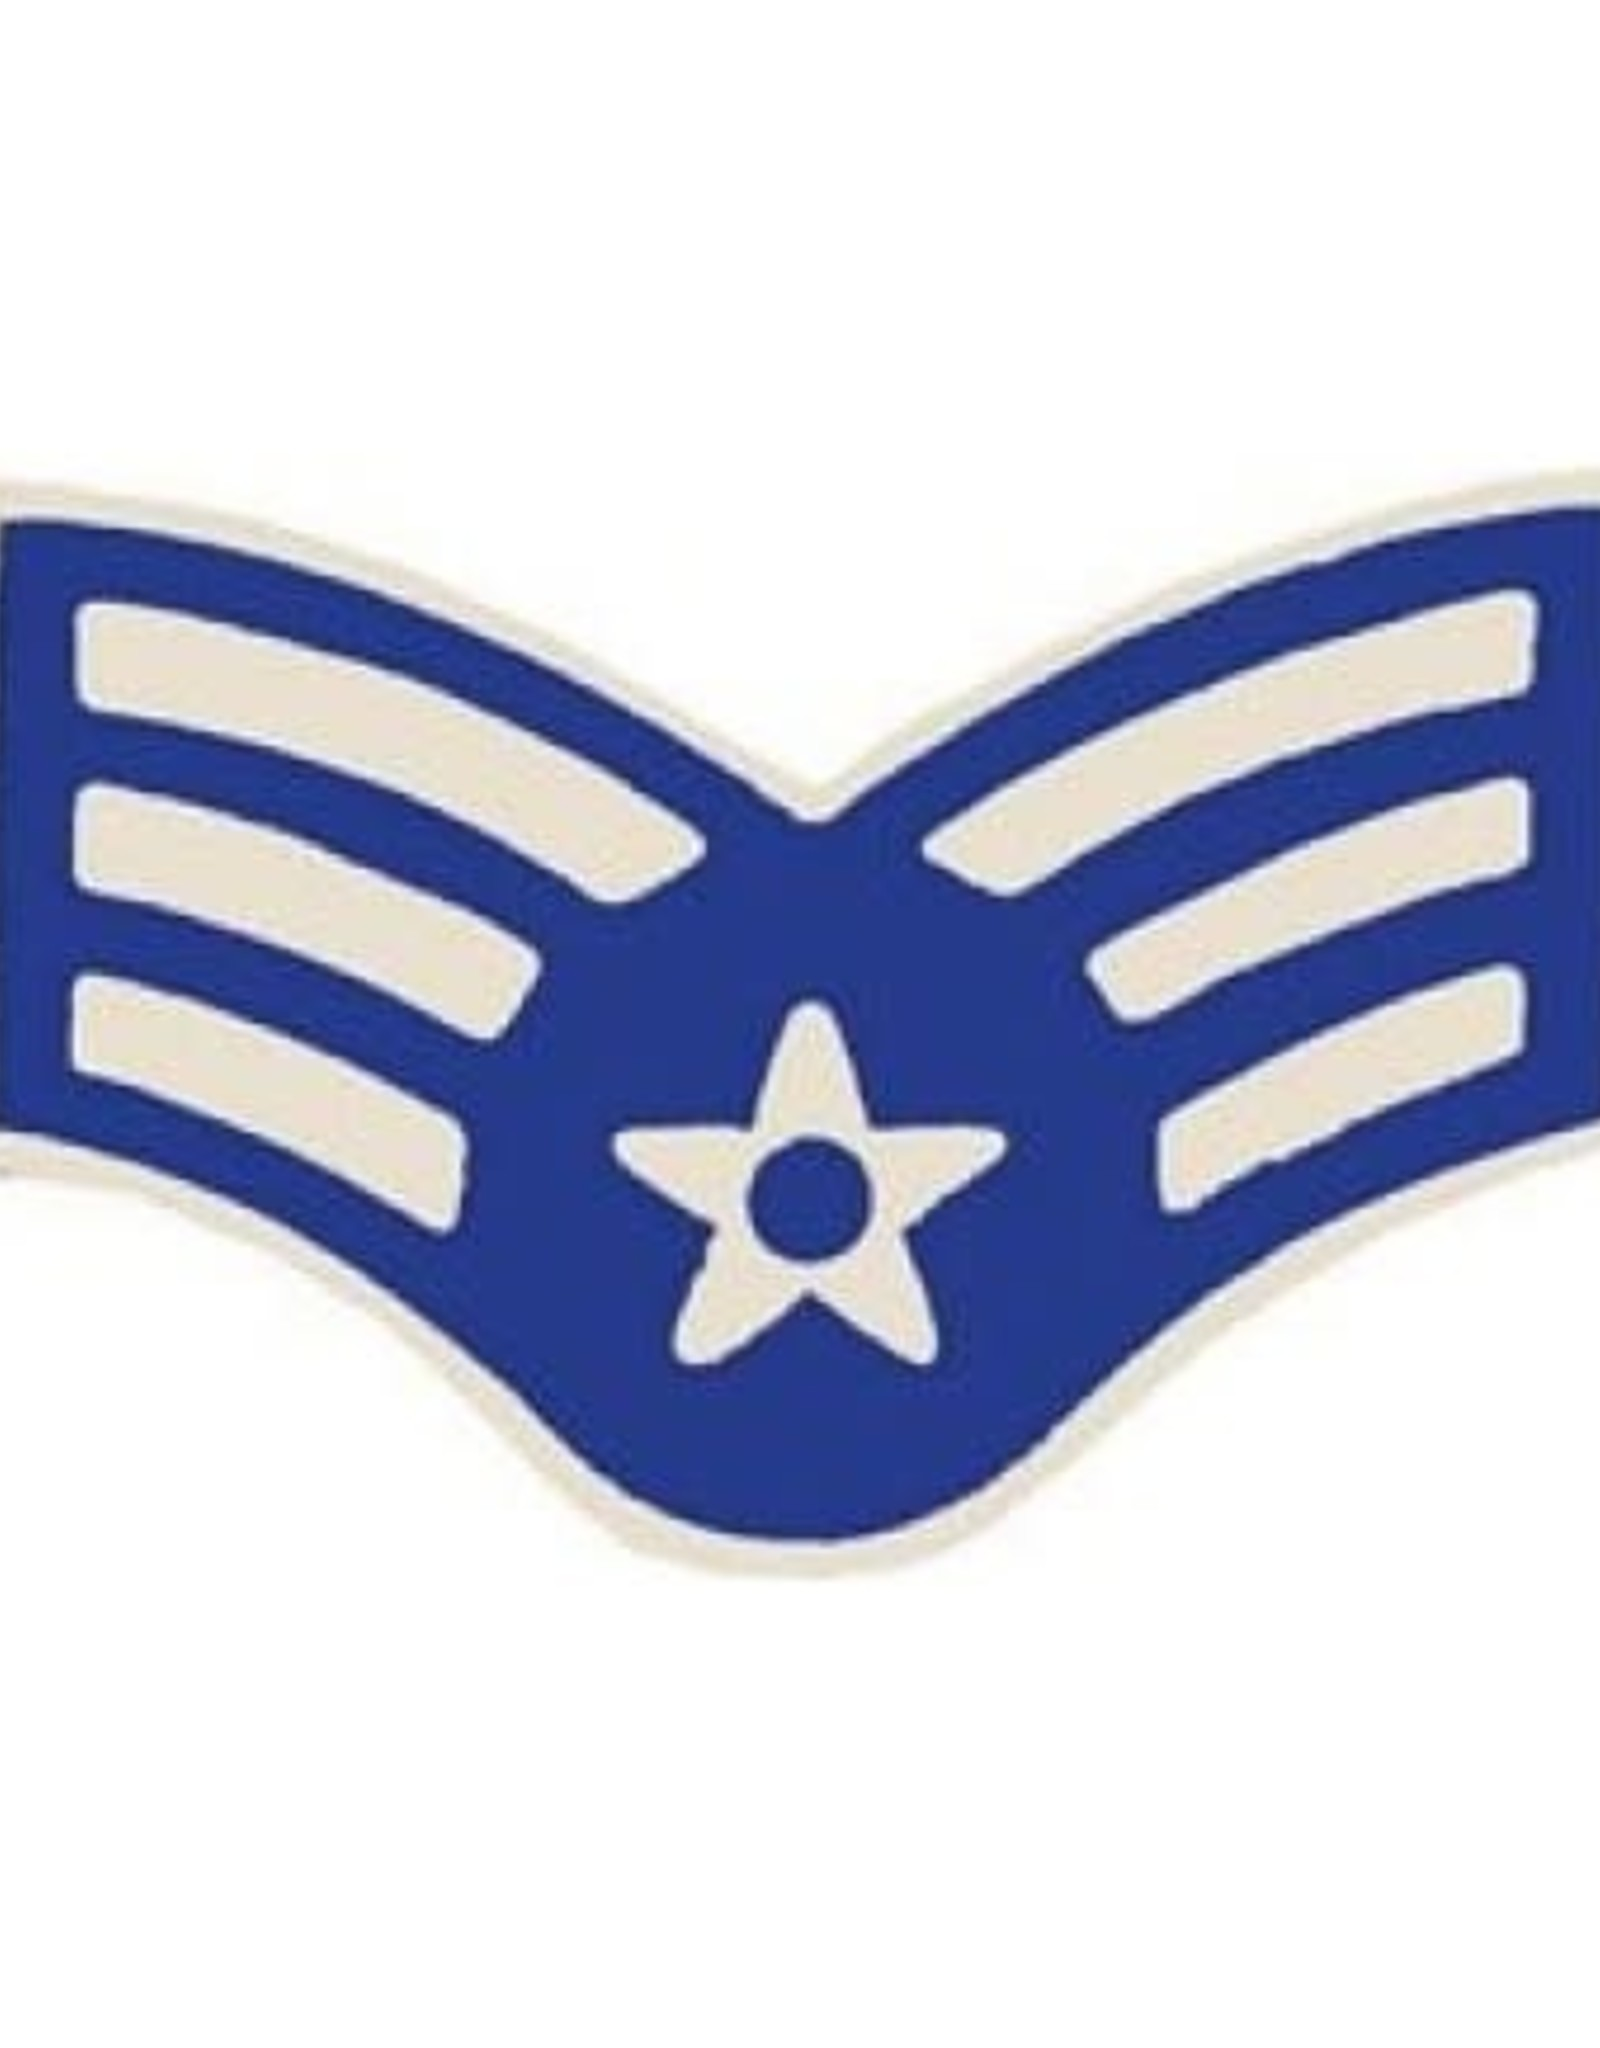 MidMil Air Force Senior Airman (E-4) Pin 1 1/16""